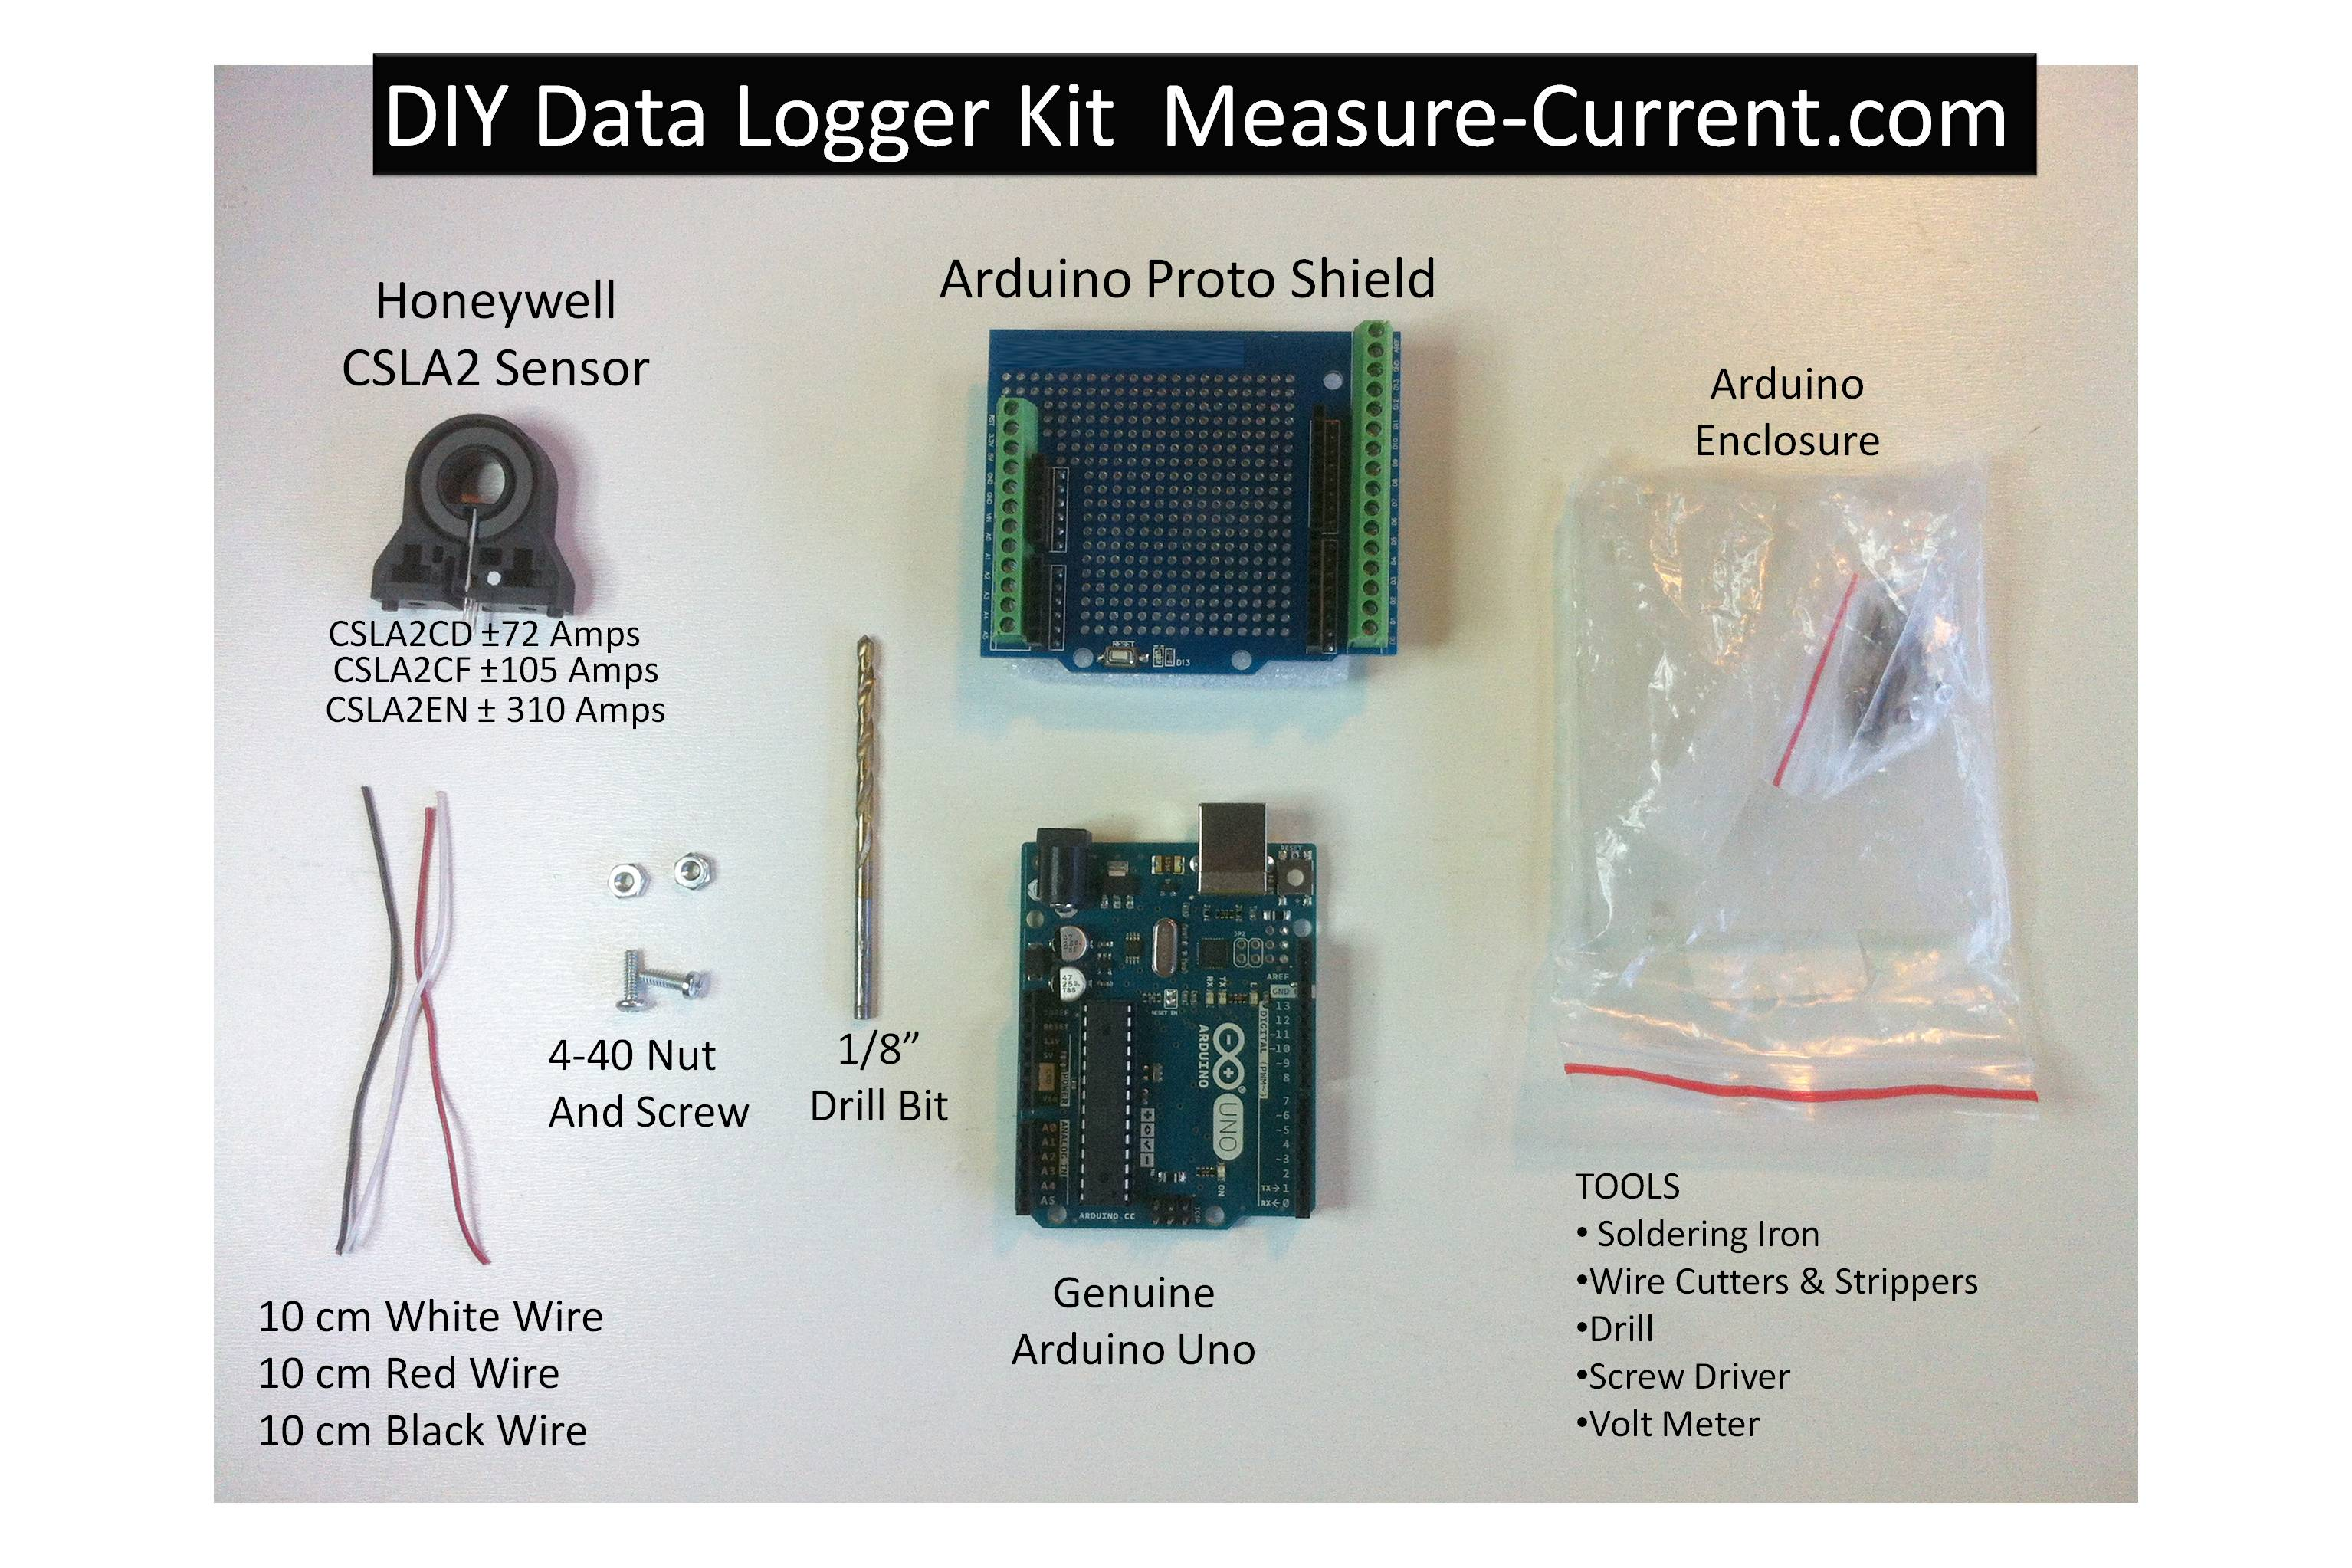 Diy Byo Do It Yourself Ac Dc Hall Effect Current Sensor Transducer Monitor Wiring Diagram Arduino Amps Data Logger Kit Free Plans